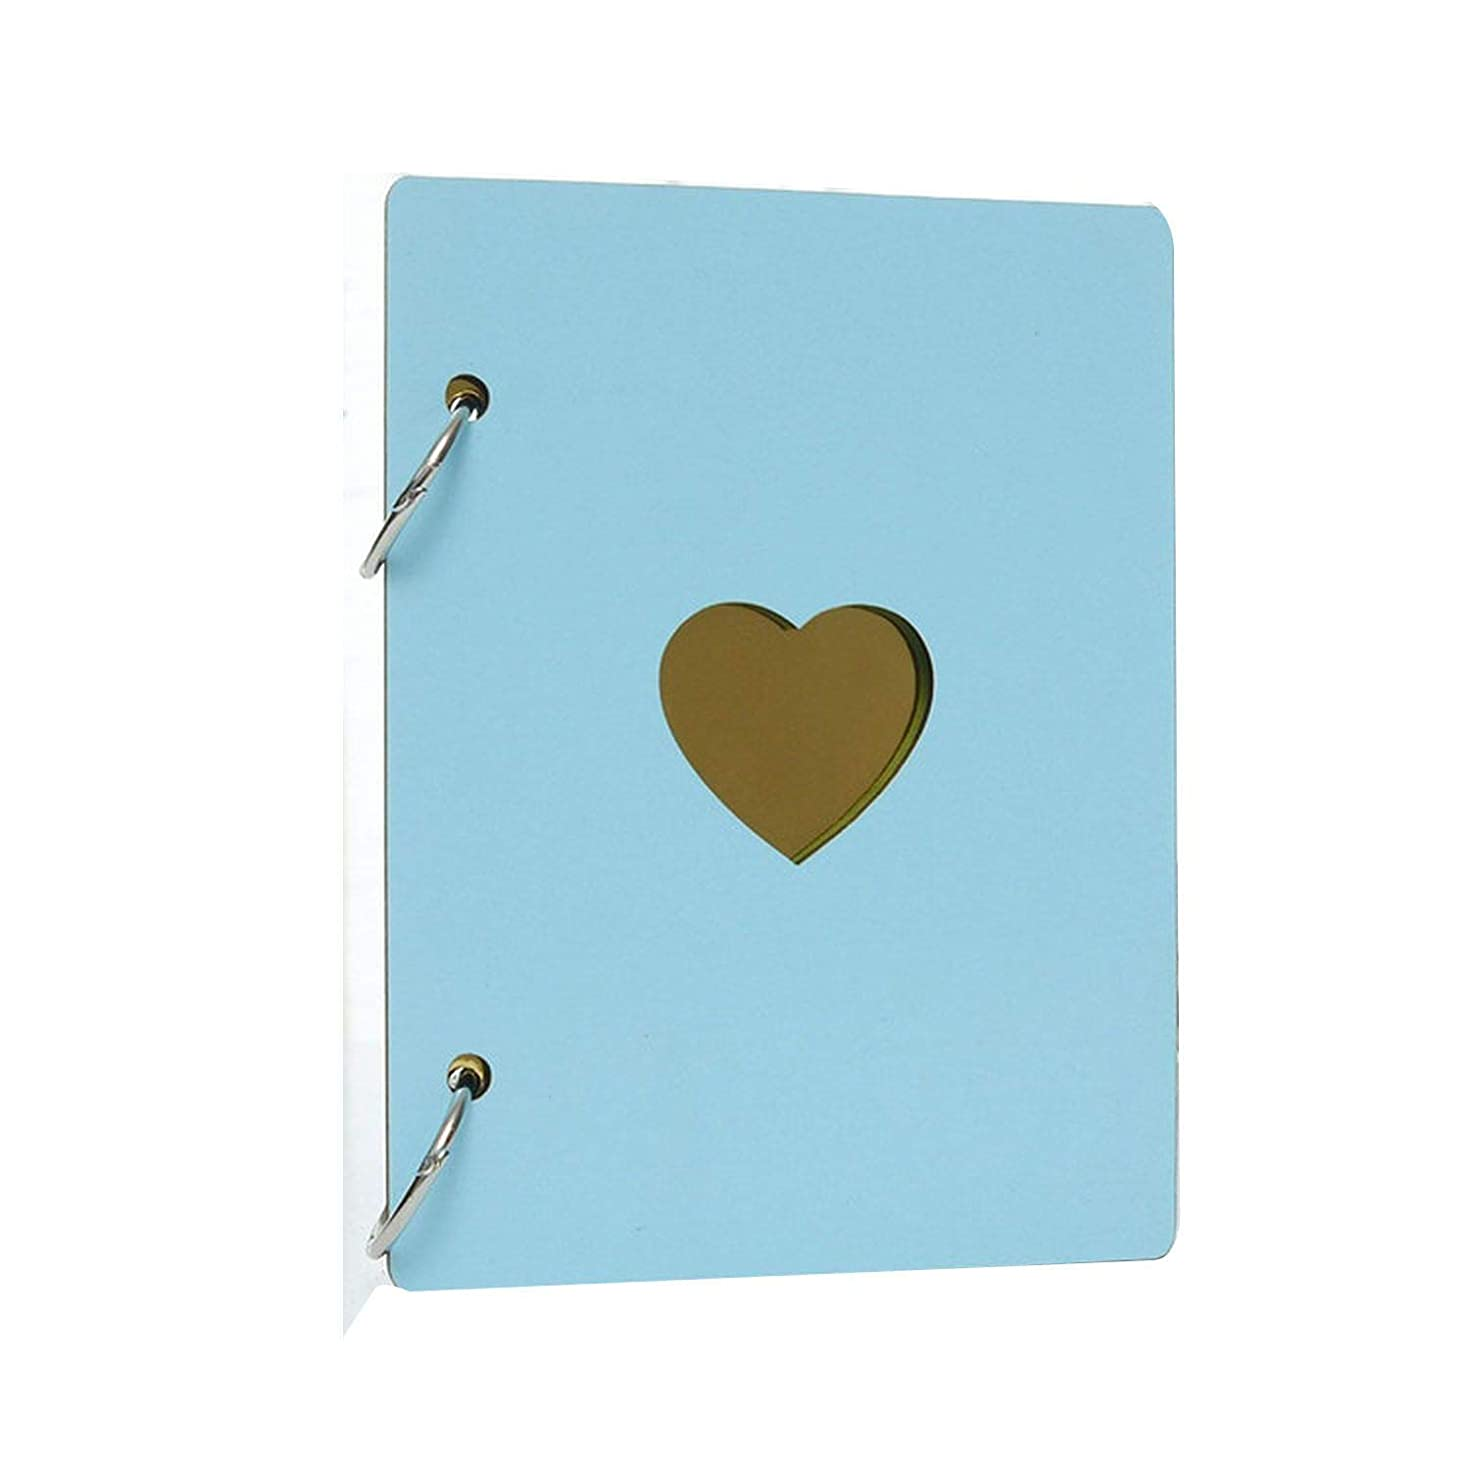 start-imagine Fashion 6 Inch Wooden Cover DIY Photo Album Baby Growth Memory Albums Life Photo Embossed Book Wedding Photo,Sky Blue